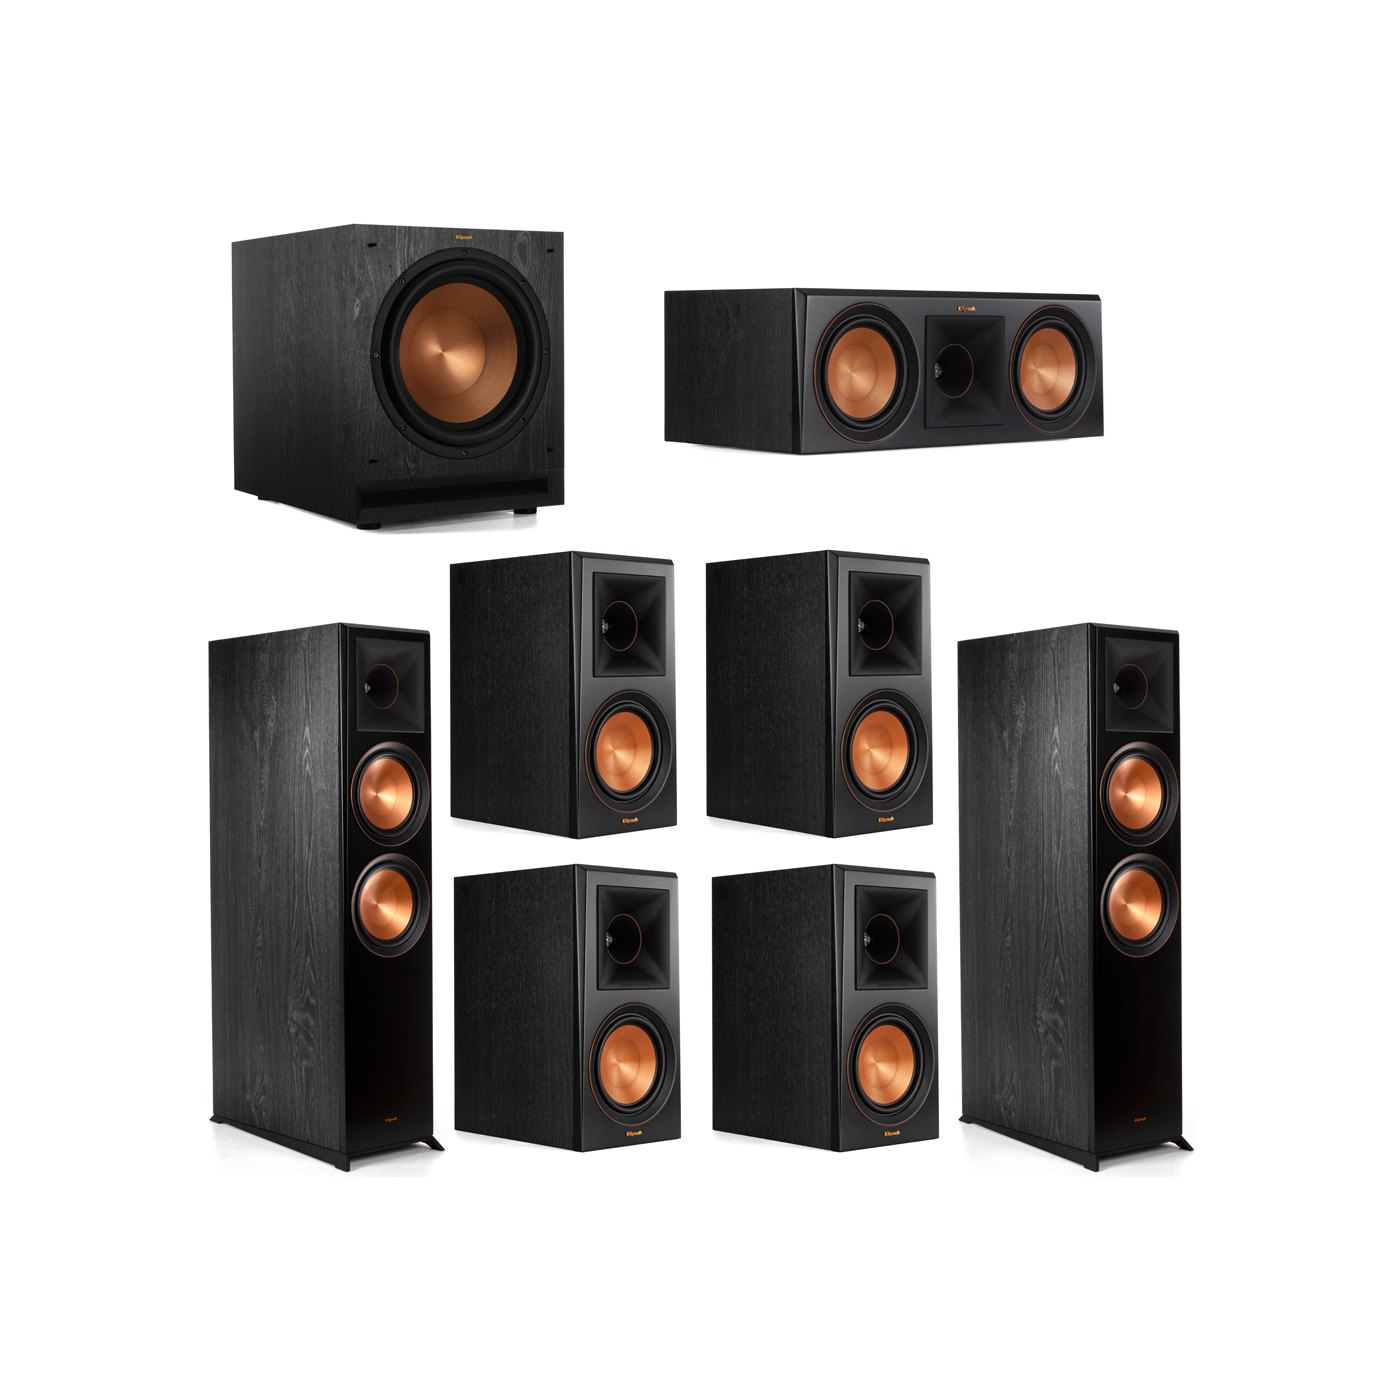 Klipsch 7.1 System with 2 RP-8000F Floorstanding Speakers, 1 Klipsch RP-600C Center Speaker, 4 Klipsch RP-600M Surround Speakers, 1 Klipsch SPL-120 Subwoofer